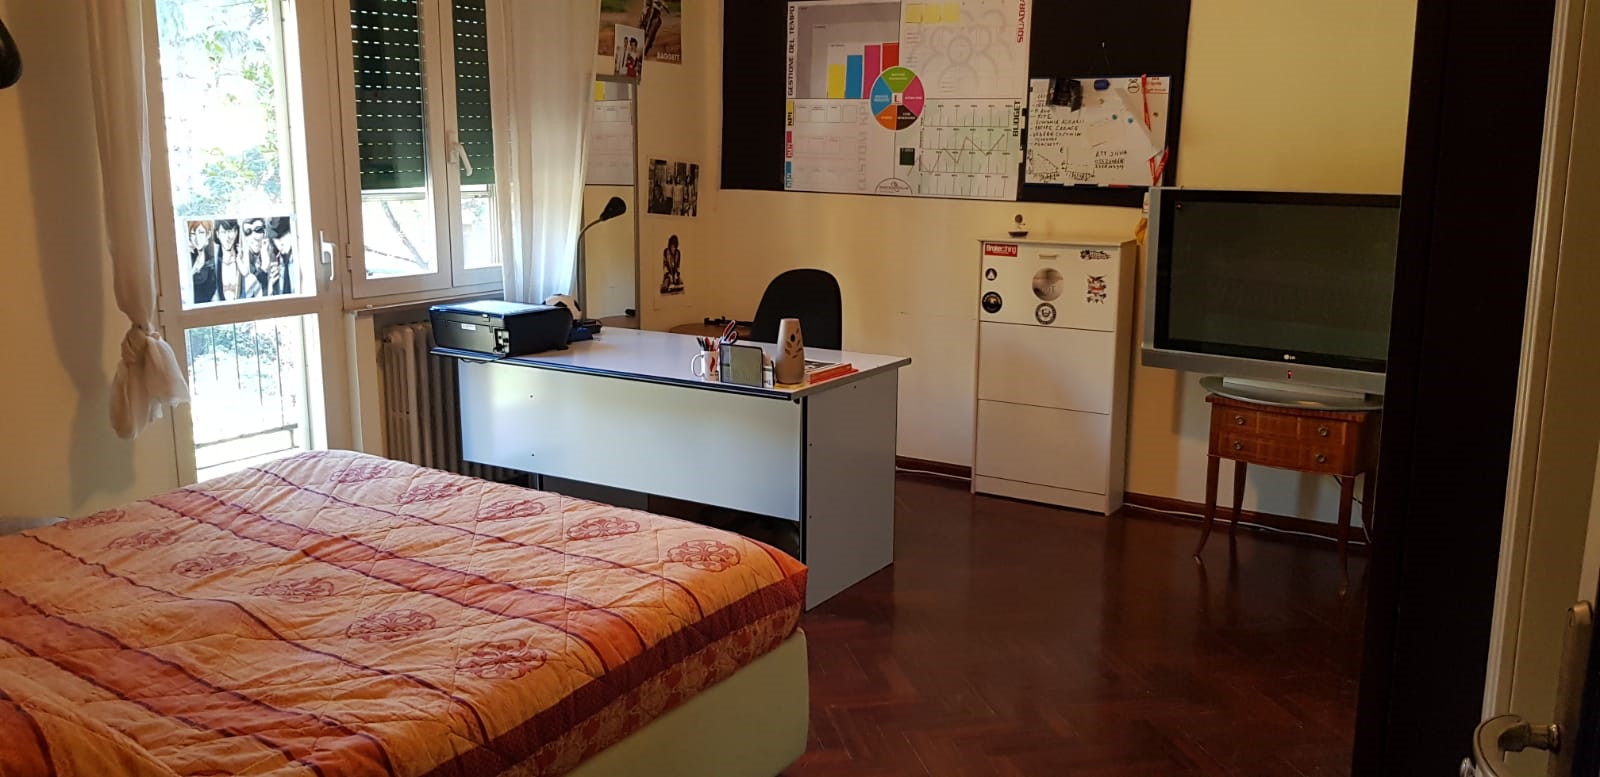 Room For Rent In 3 Bedroom Apartment In Perugia With Storage Area And With Fireplace